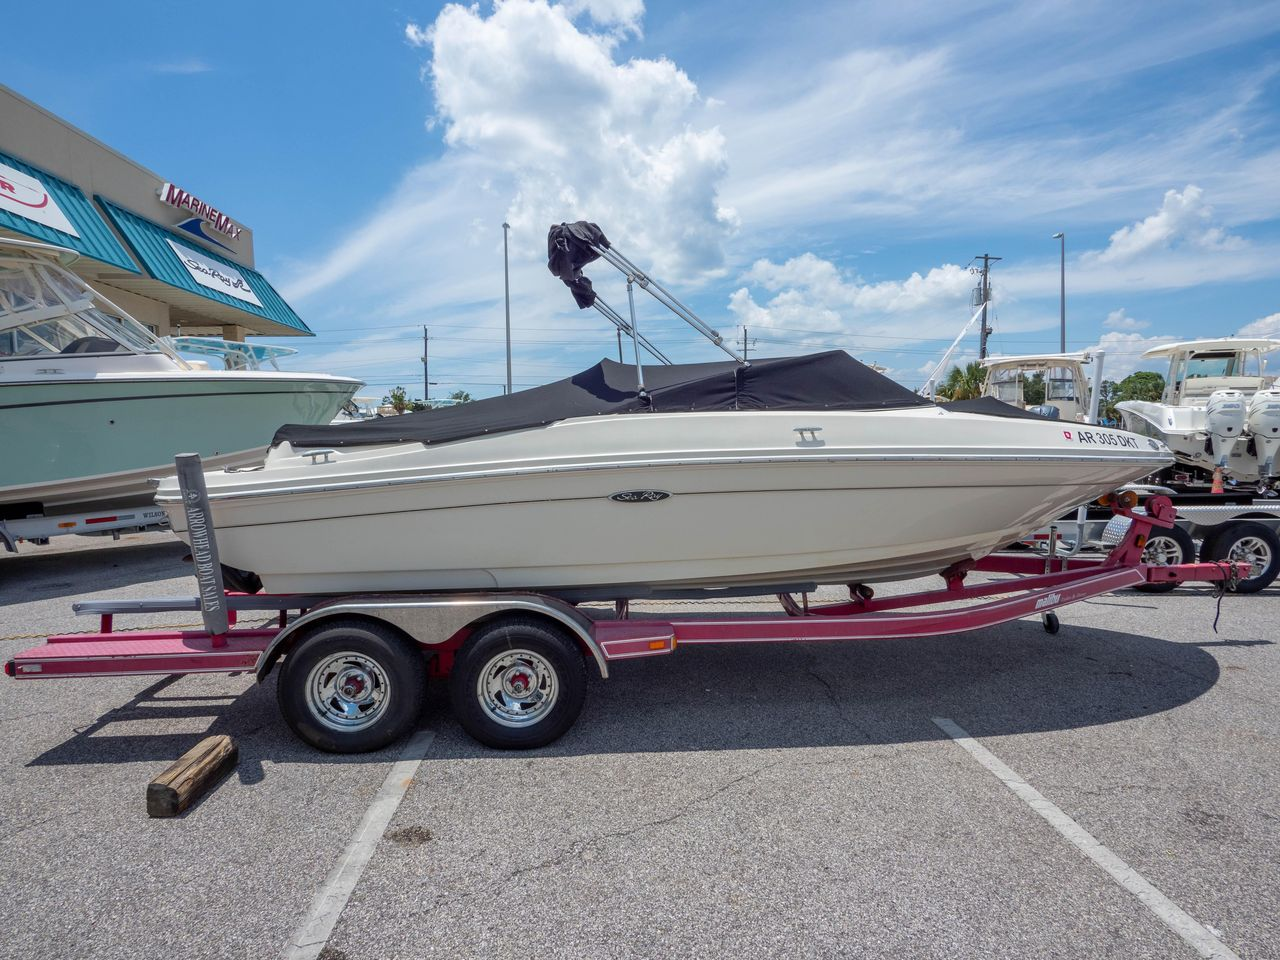 2010 Used Sea Ray 205 Sport High Performance Boat For Sale